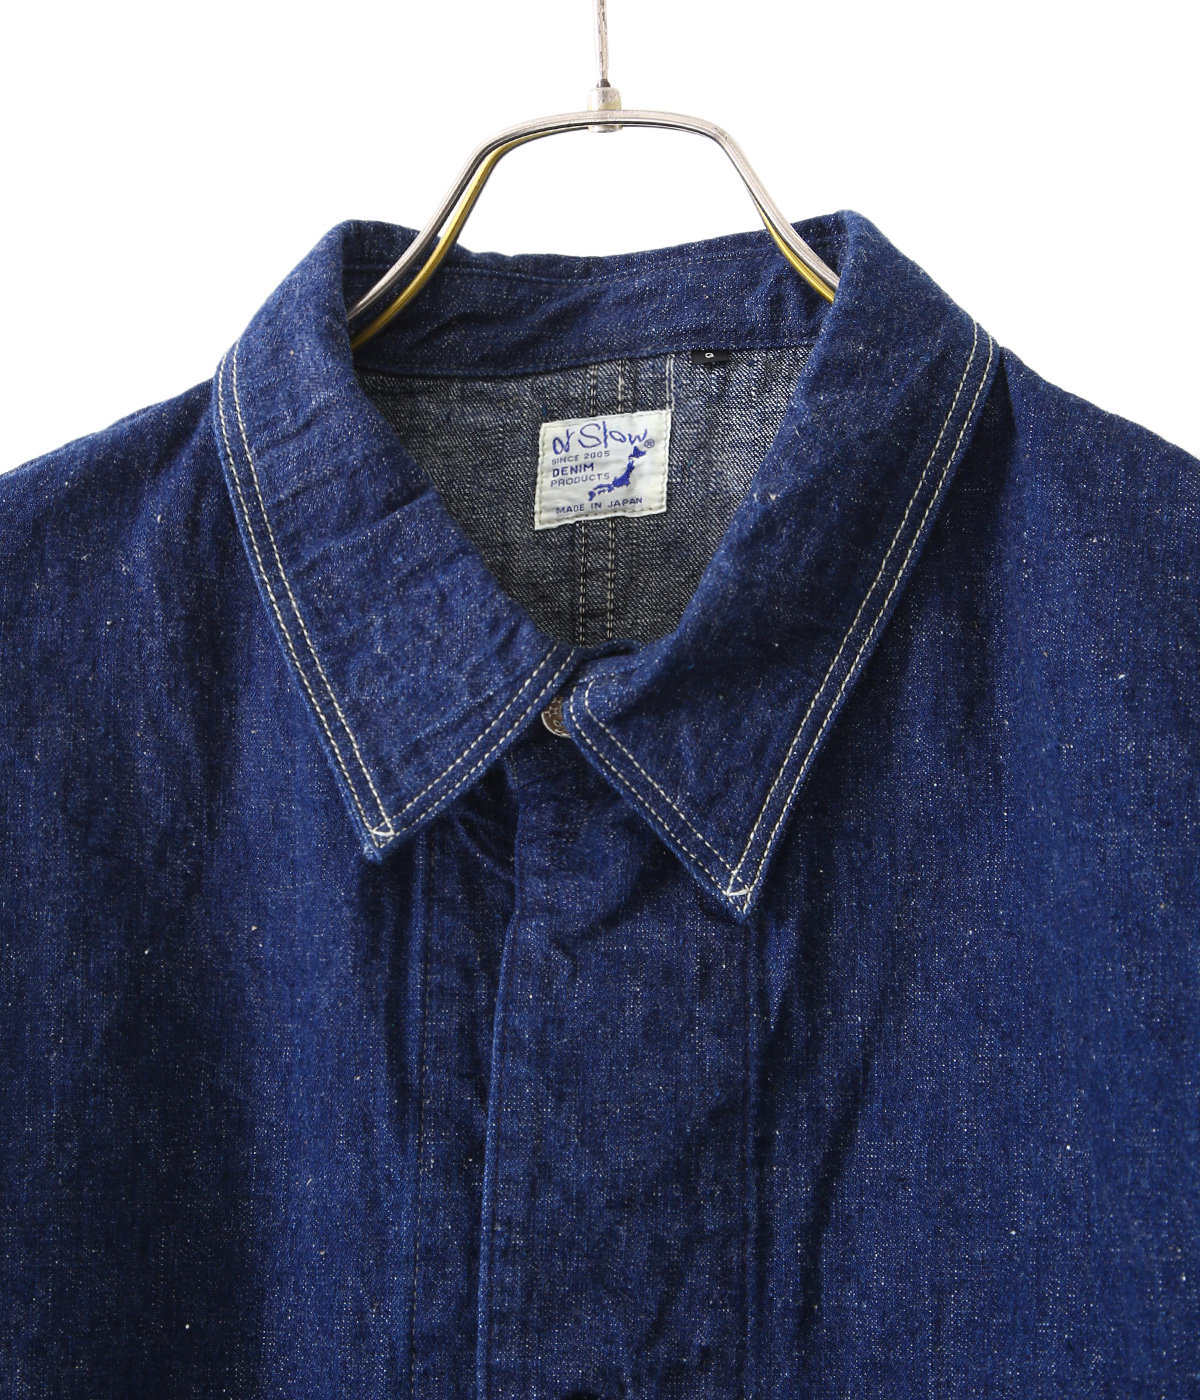 【ONLY ARK】別注 MEN'S 40's COVERALL O/W+PAINT